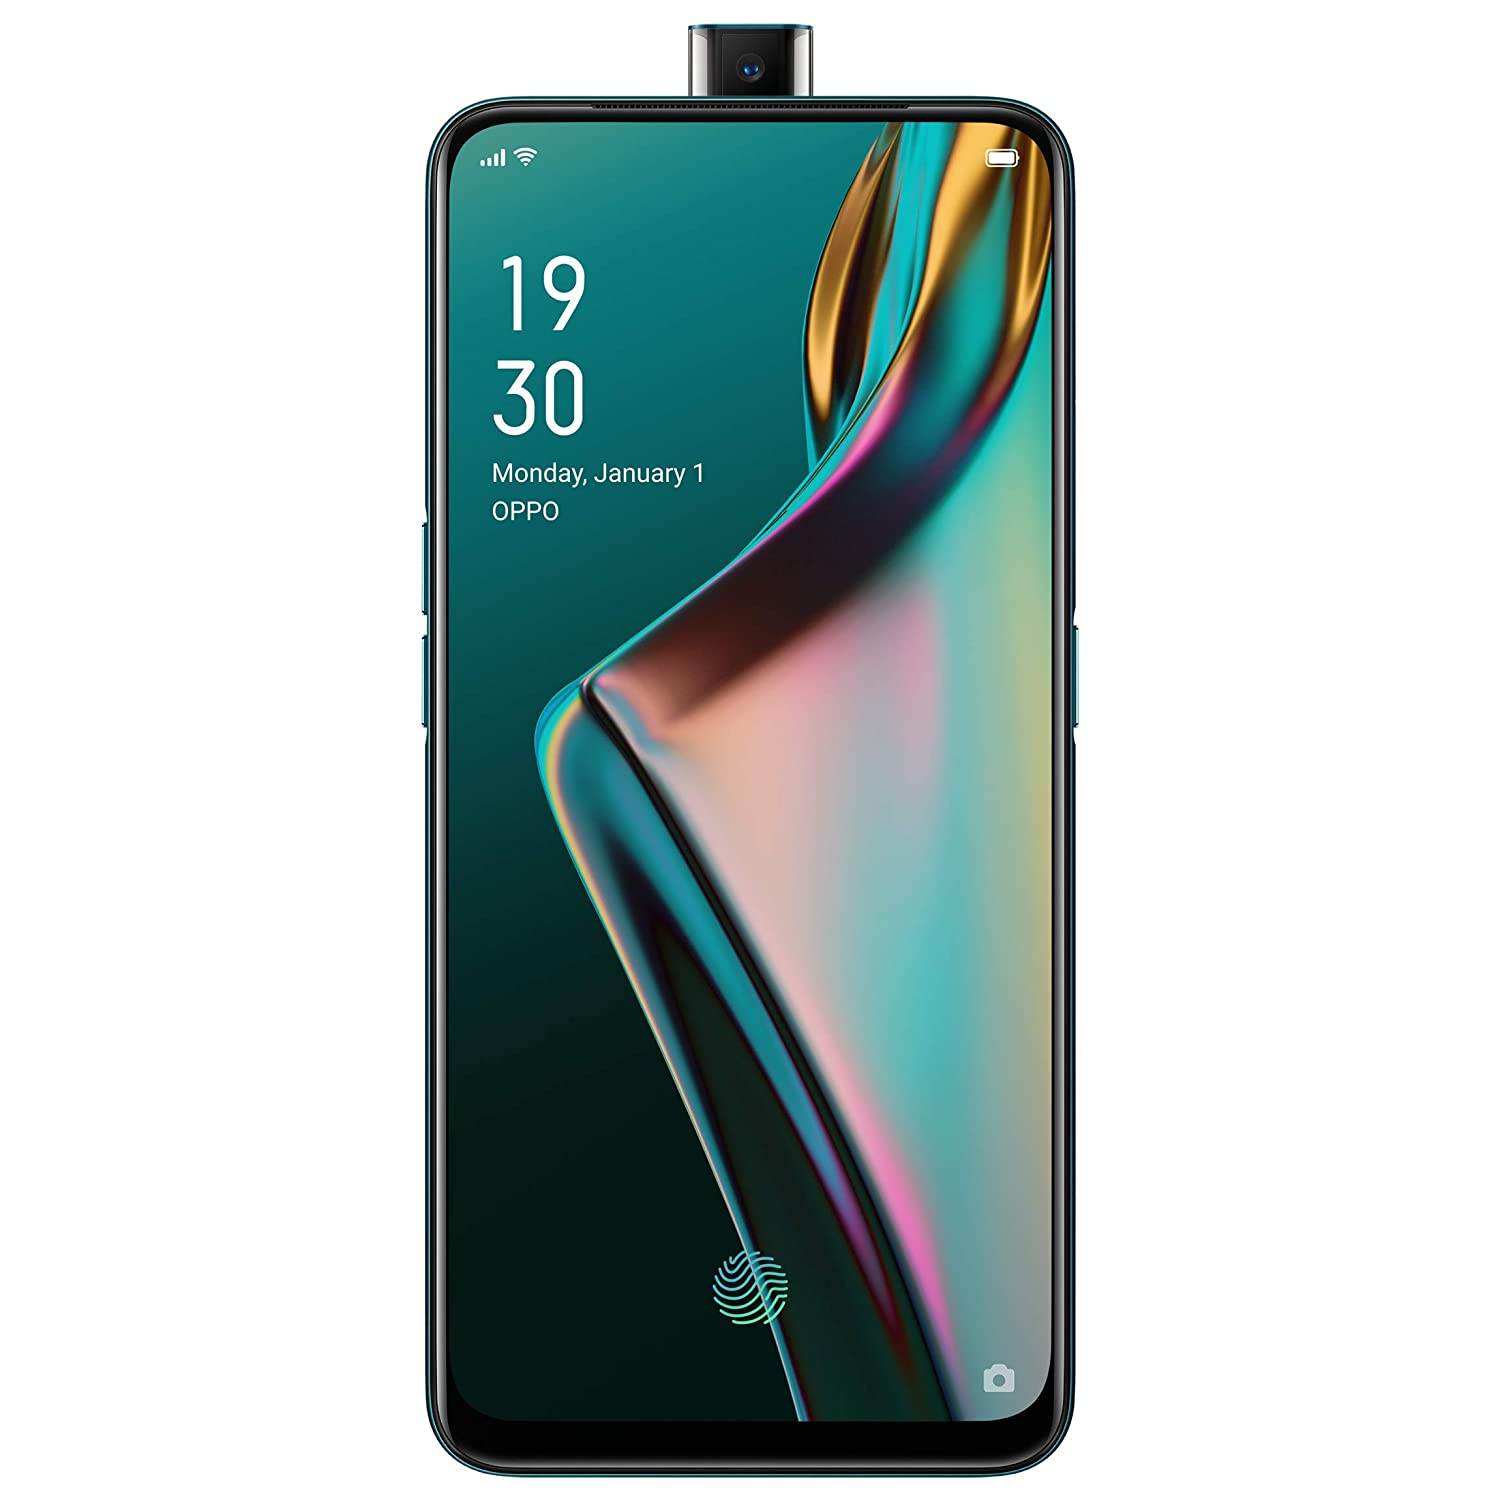 OPPO K3(Jade Black, 6GB RAM, AMOLED Display, 64GB Storage, 3765mAH Battery)